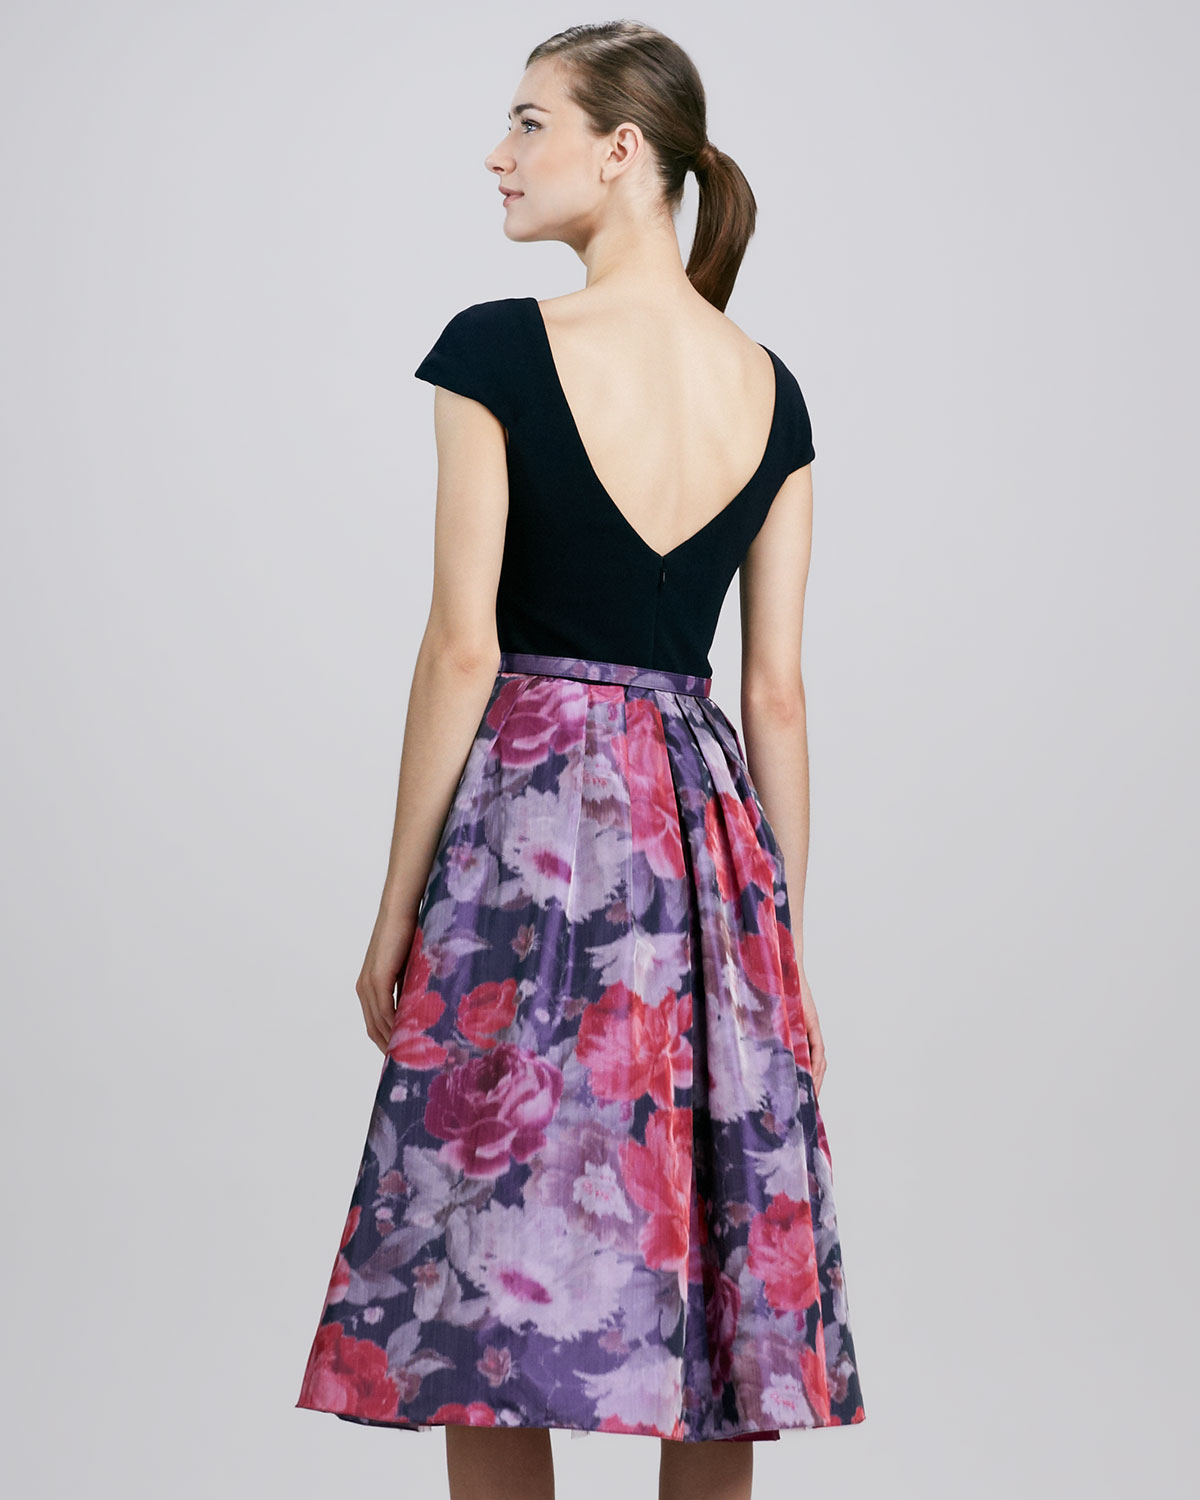 Lyst - Theia Floral Fullskirt Combo Cocktail Dress in Purple